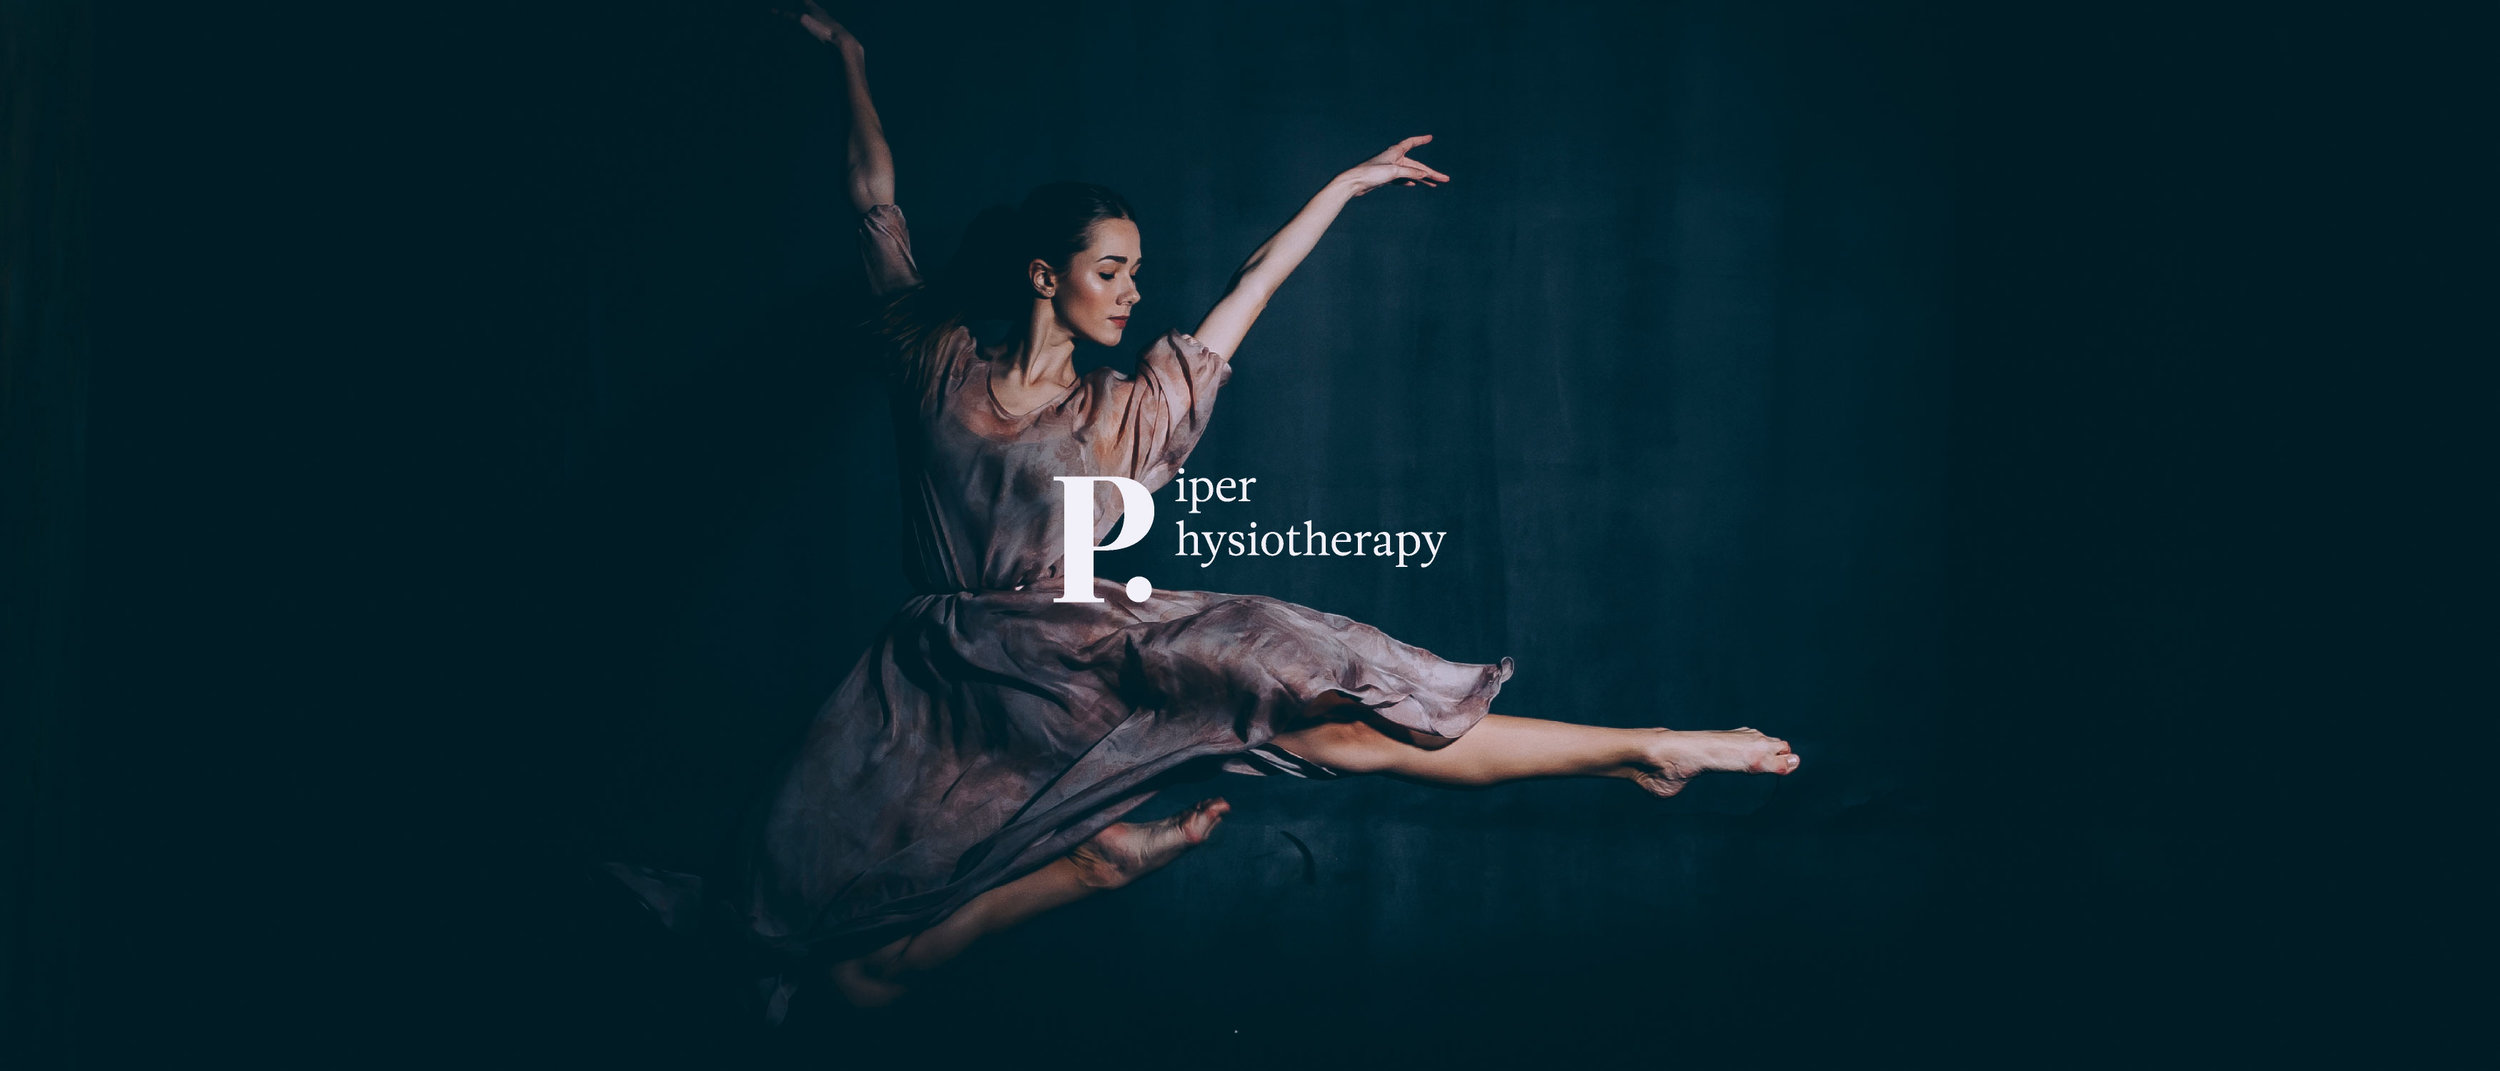 Piper-Physiotherapy.jpg